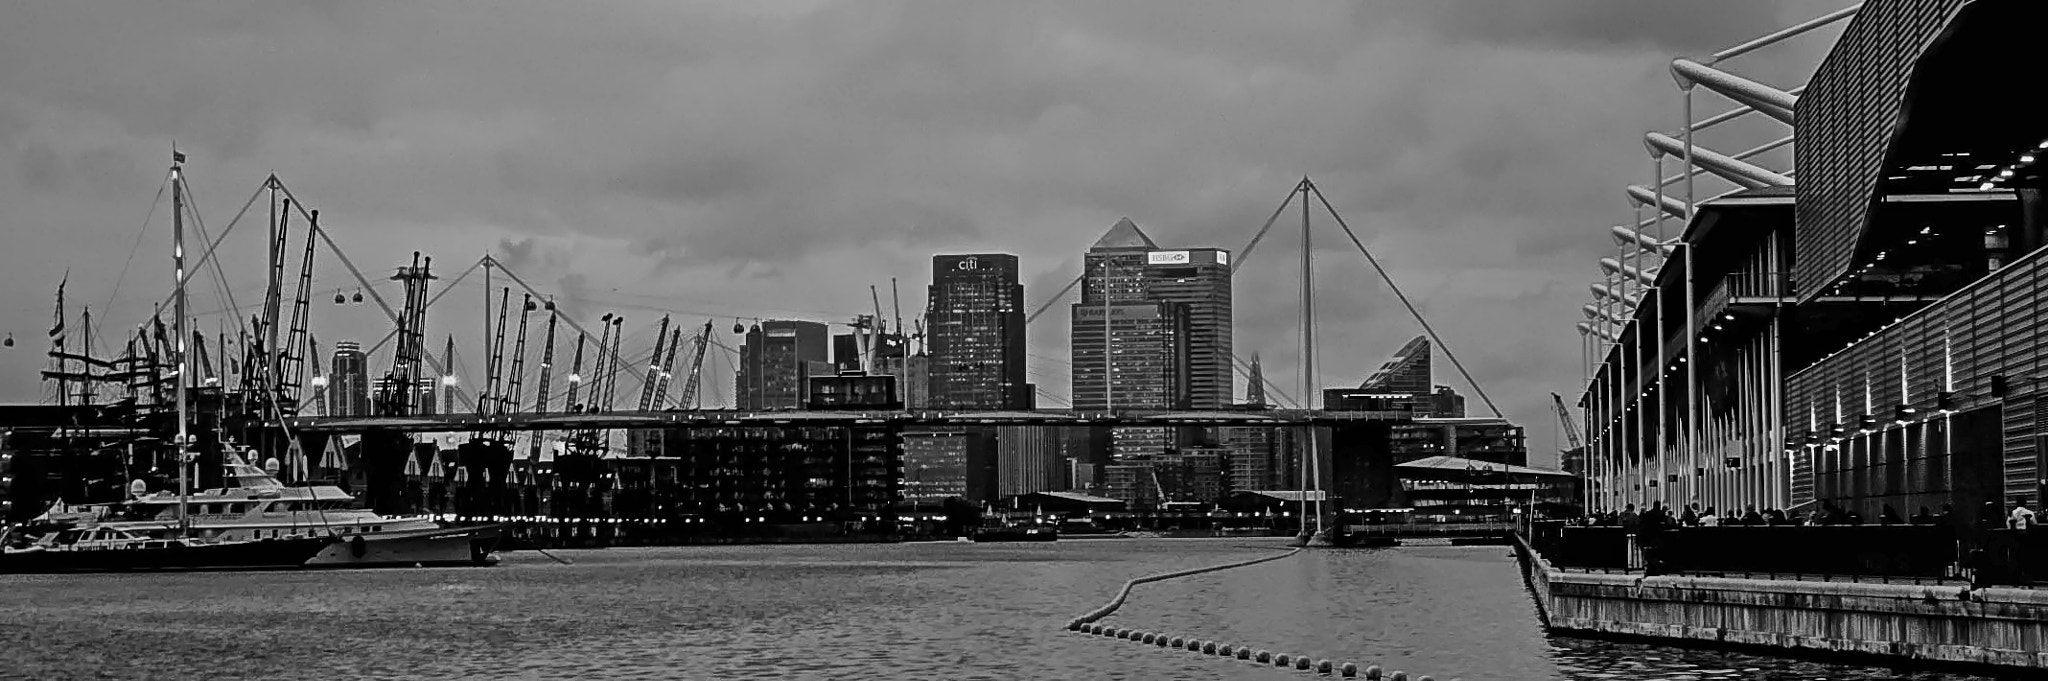 Photograph Panoramic London by Ali KoRdZaDeh on 500px